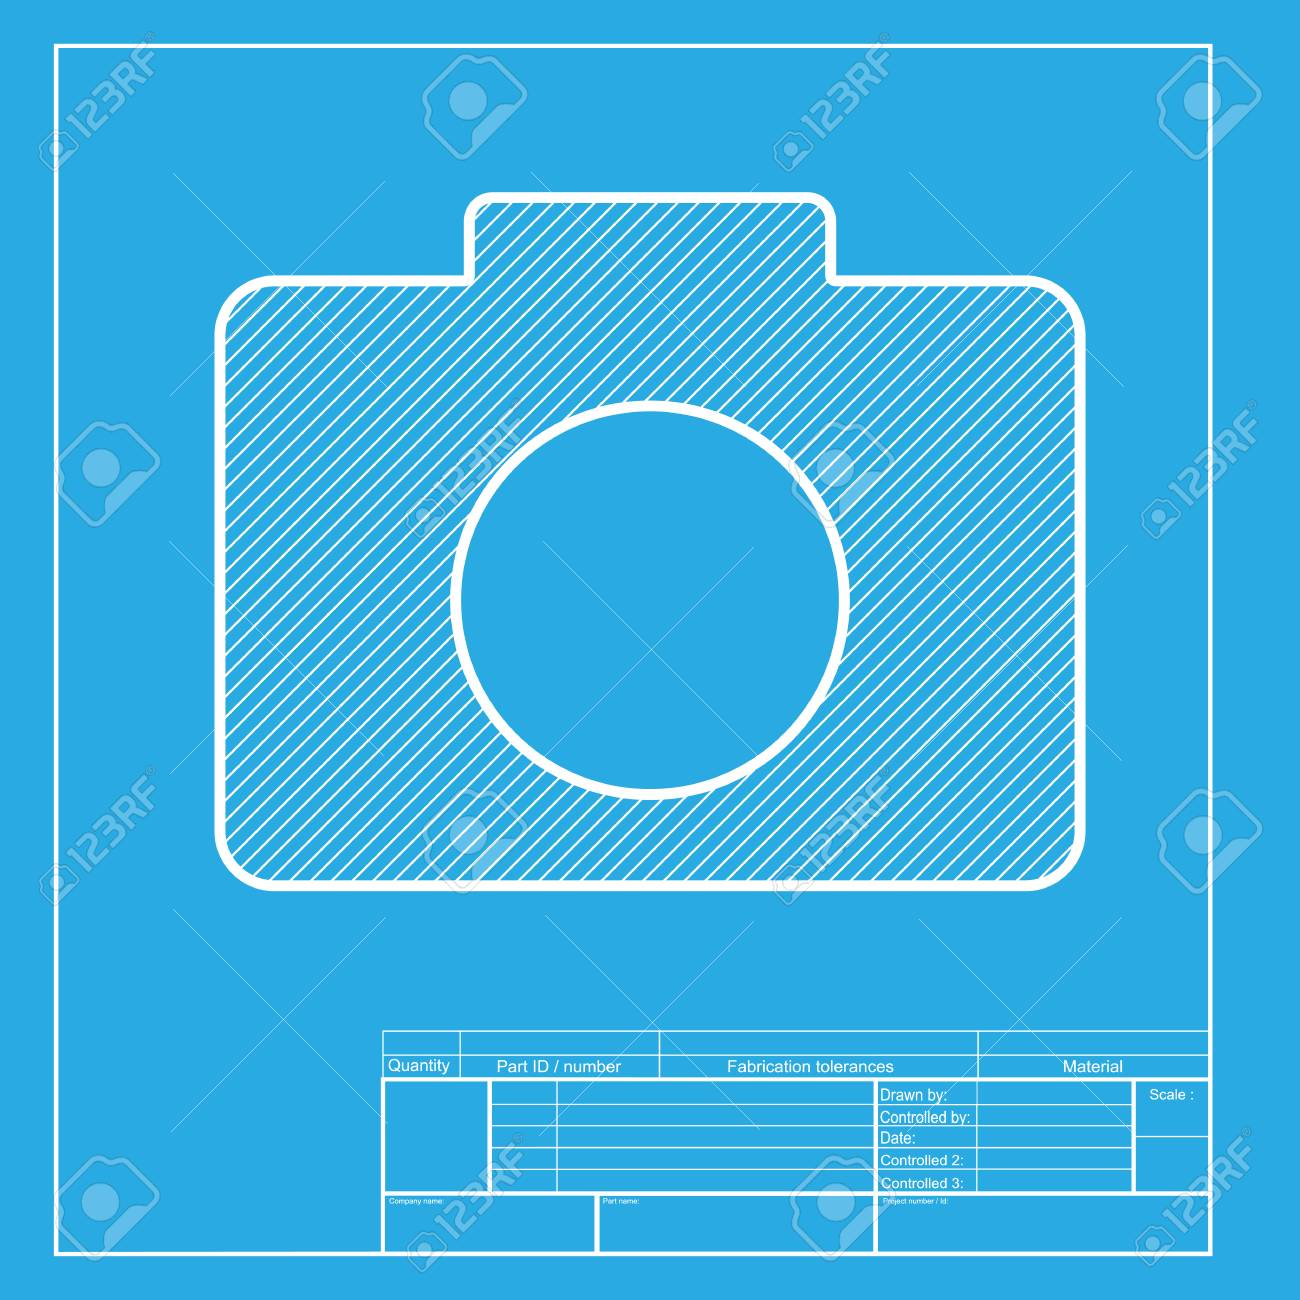 Digital camera sign white section of icon on blueprint template digital camera sign white section of icon on blueprint template stock vector 58741805 malvernweather Choice Image